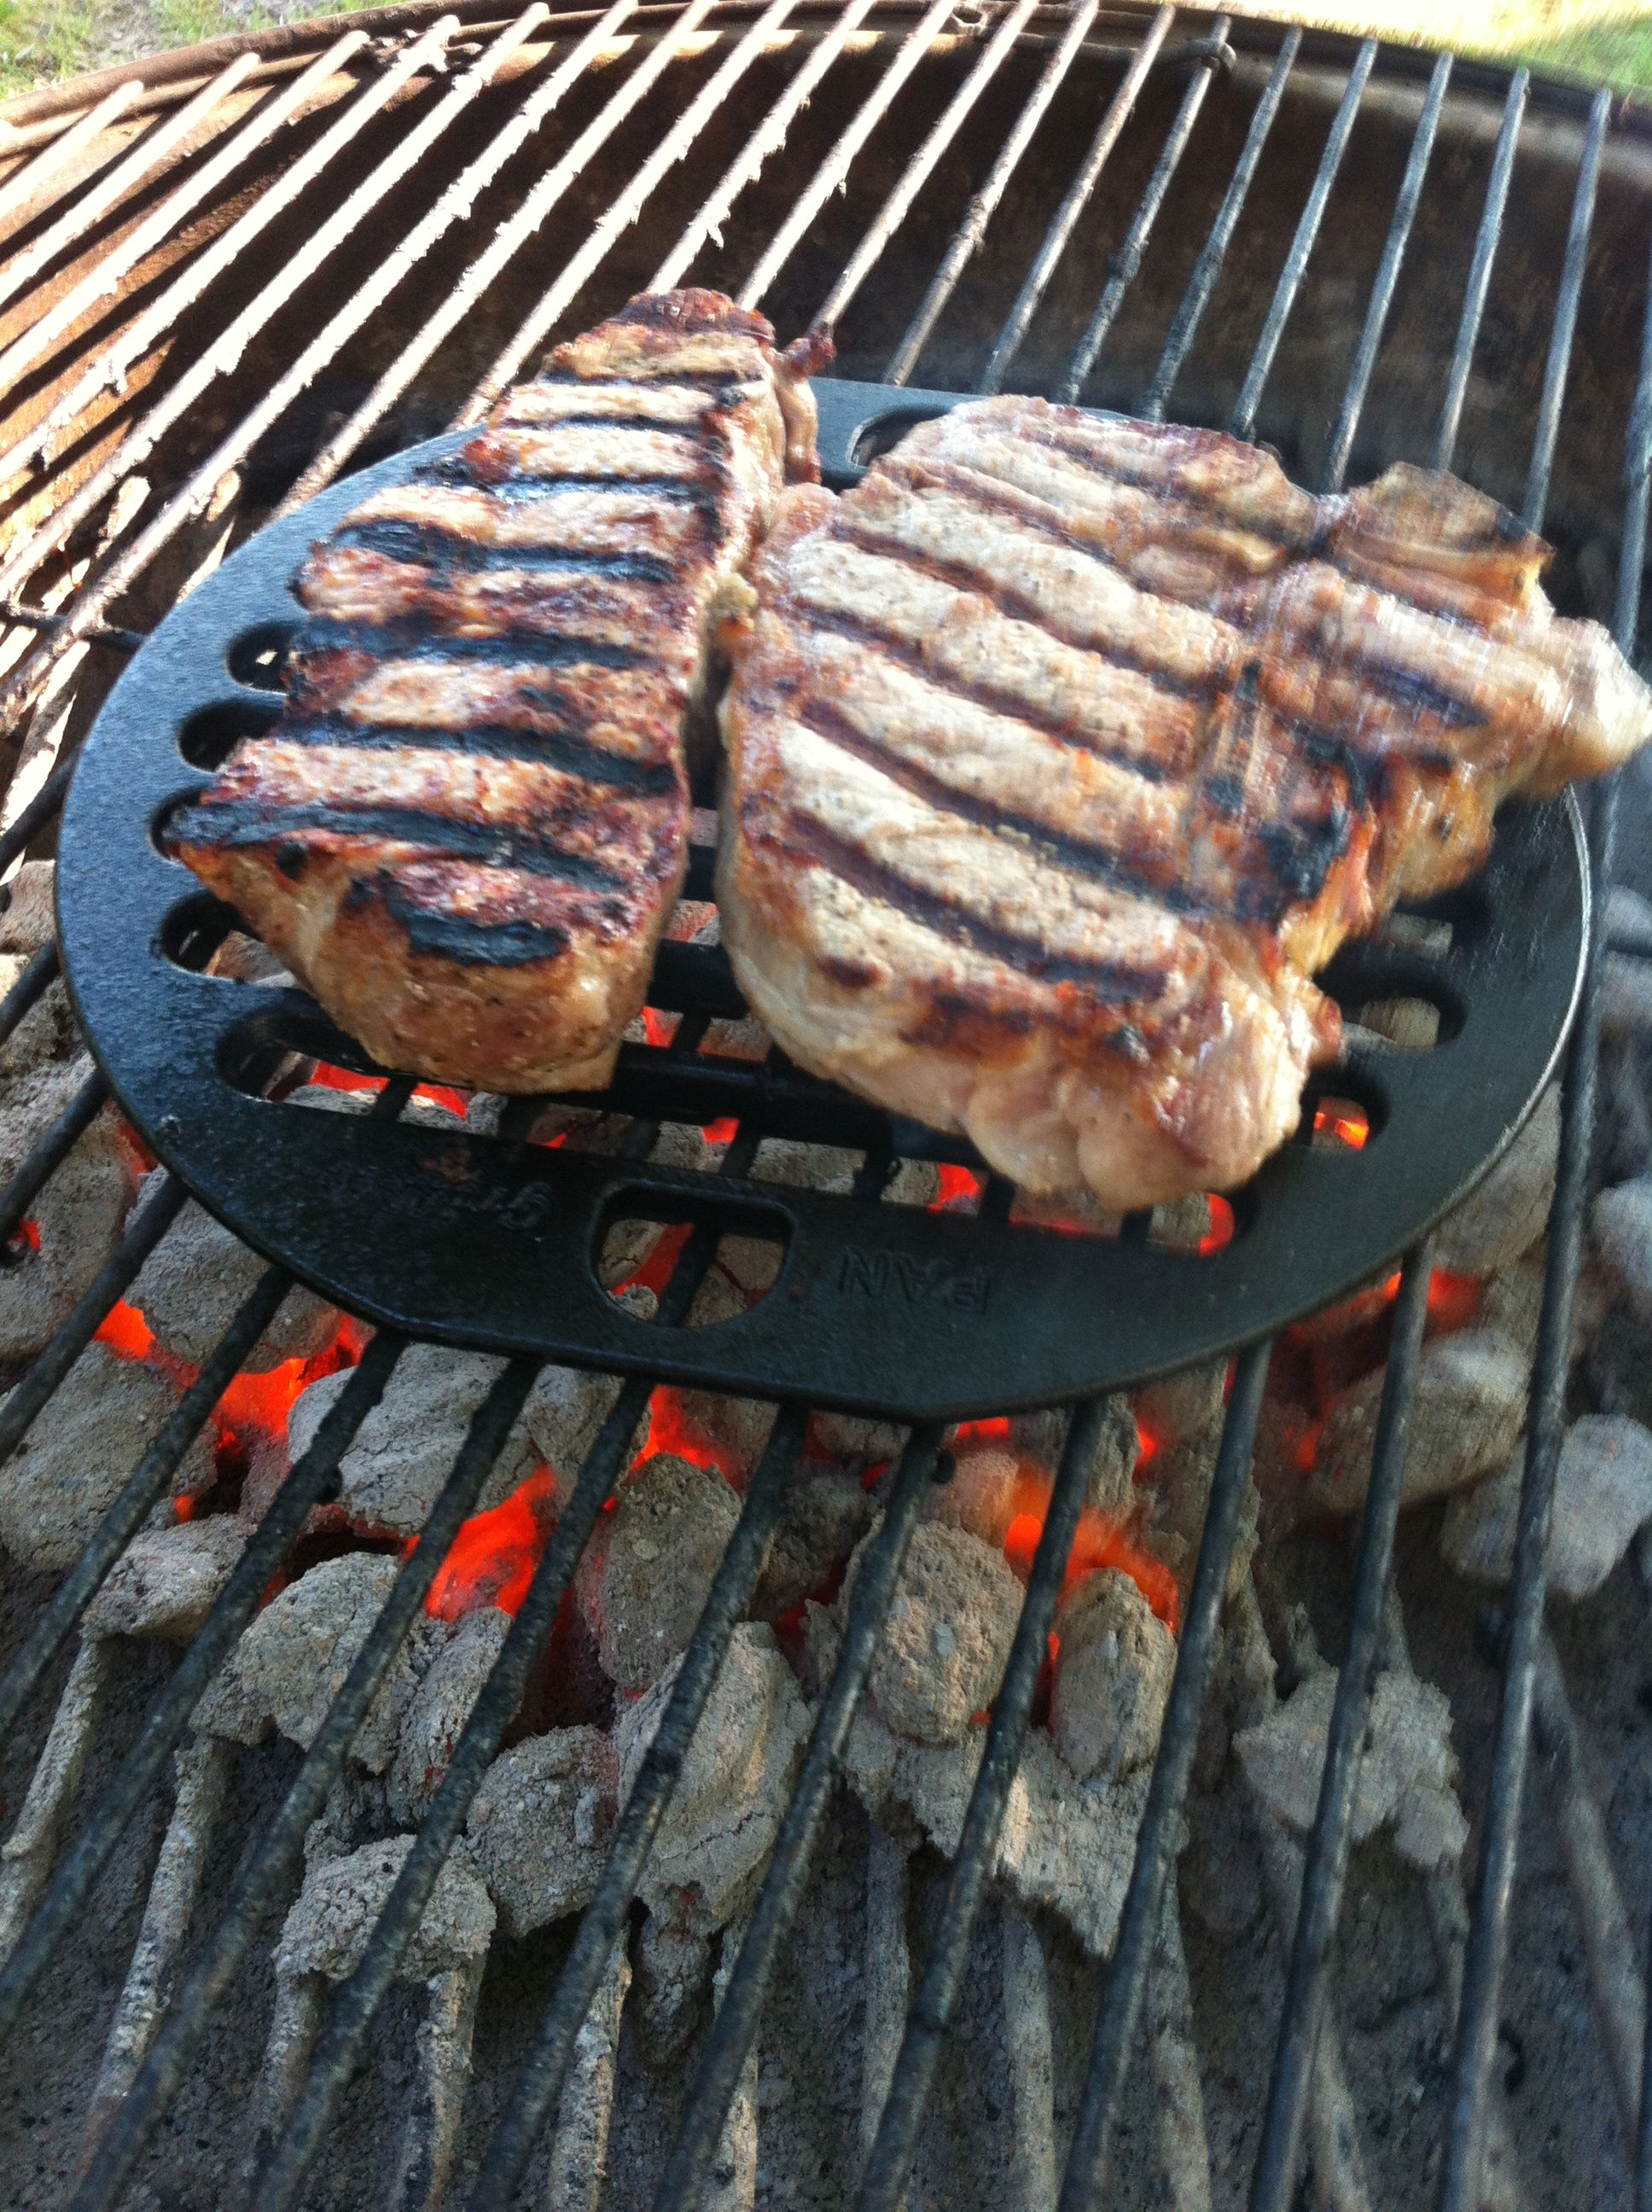 Not My Flavor But Better Than Grilling On Wire Rusted Grill Grates Dangers Of Aluminum Wiring Or Using Harmful Foil